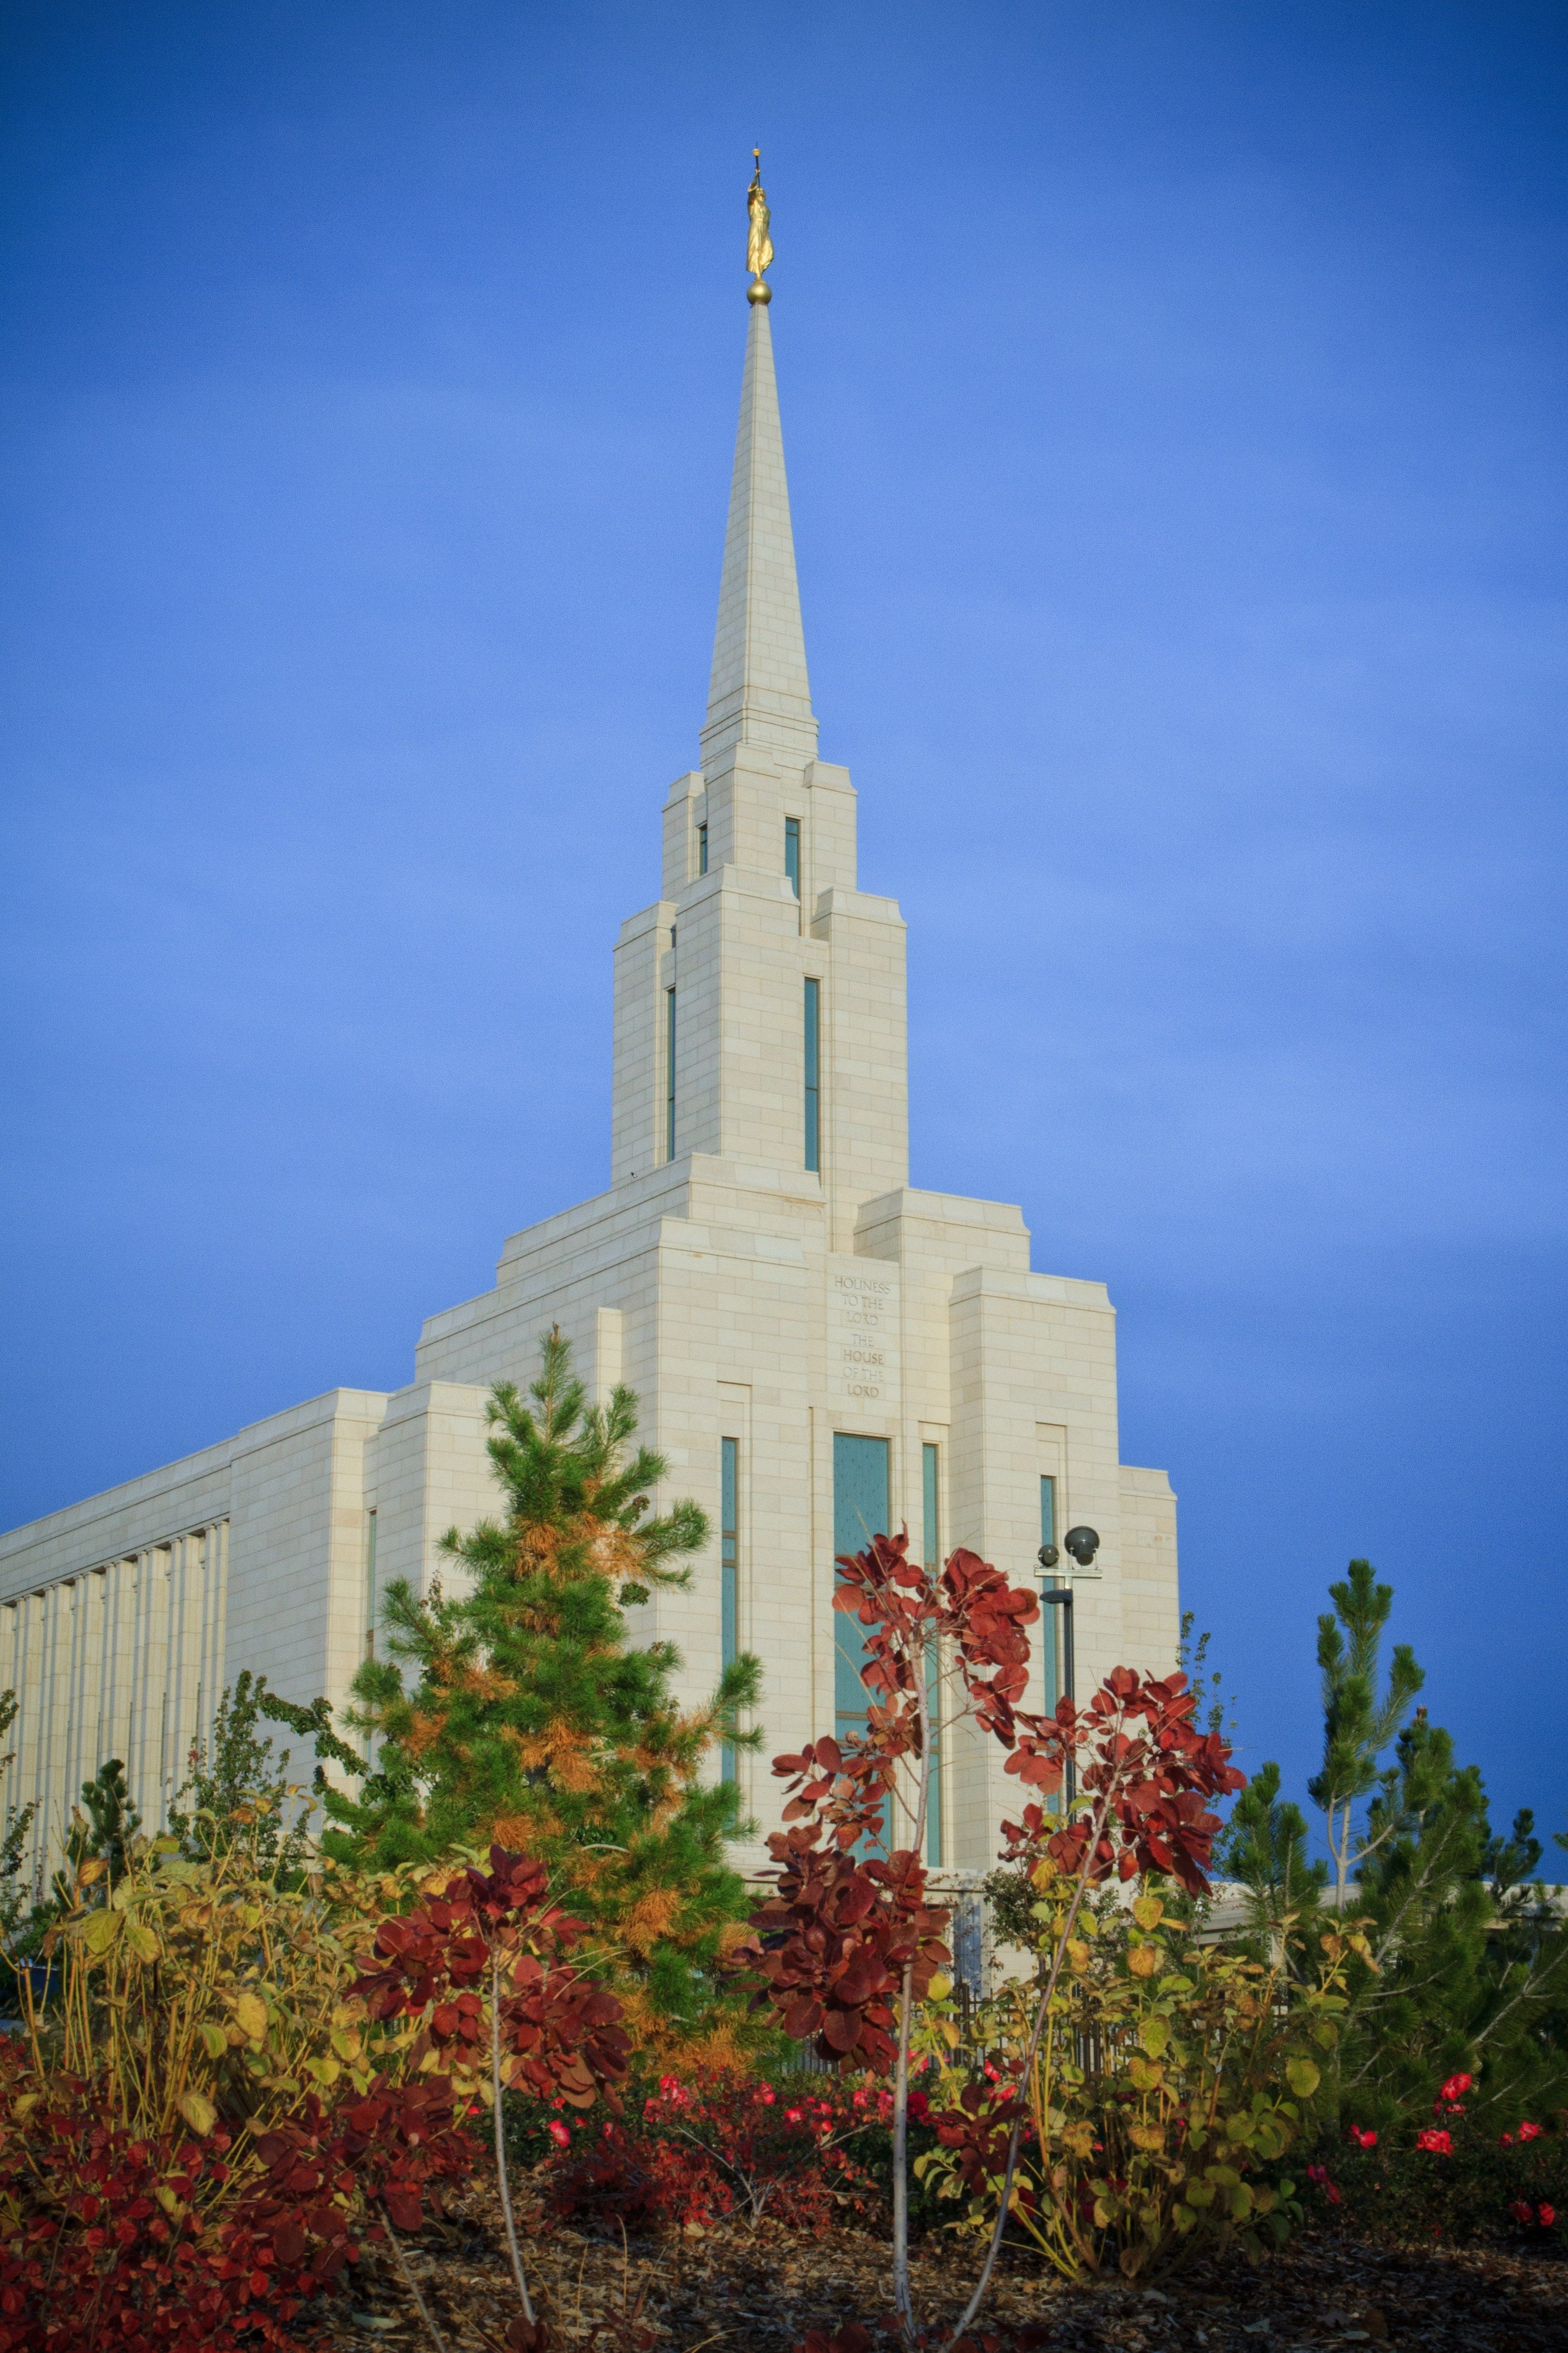 The Oquirrh Mountain Utah Temple in the fall, including scenery.